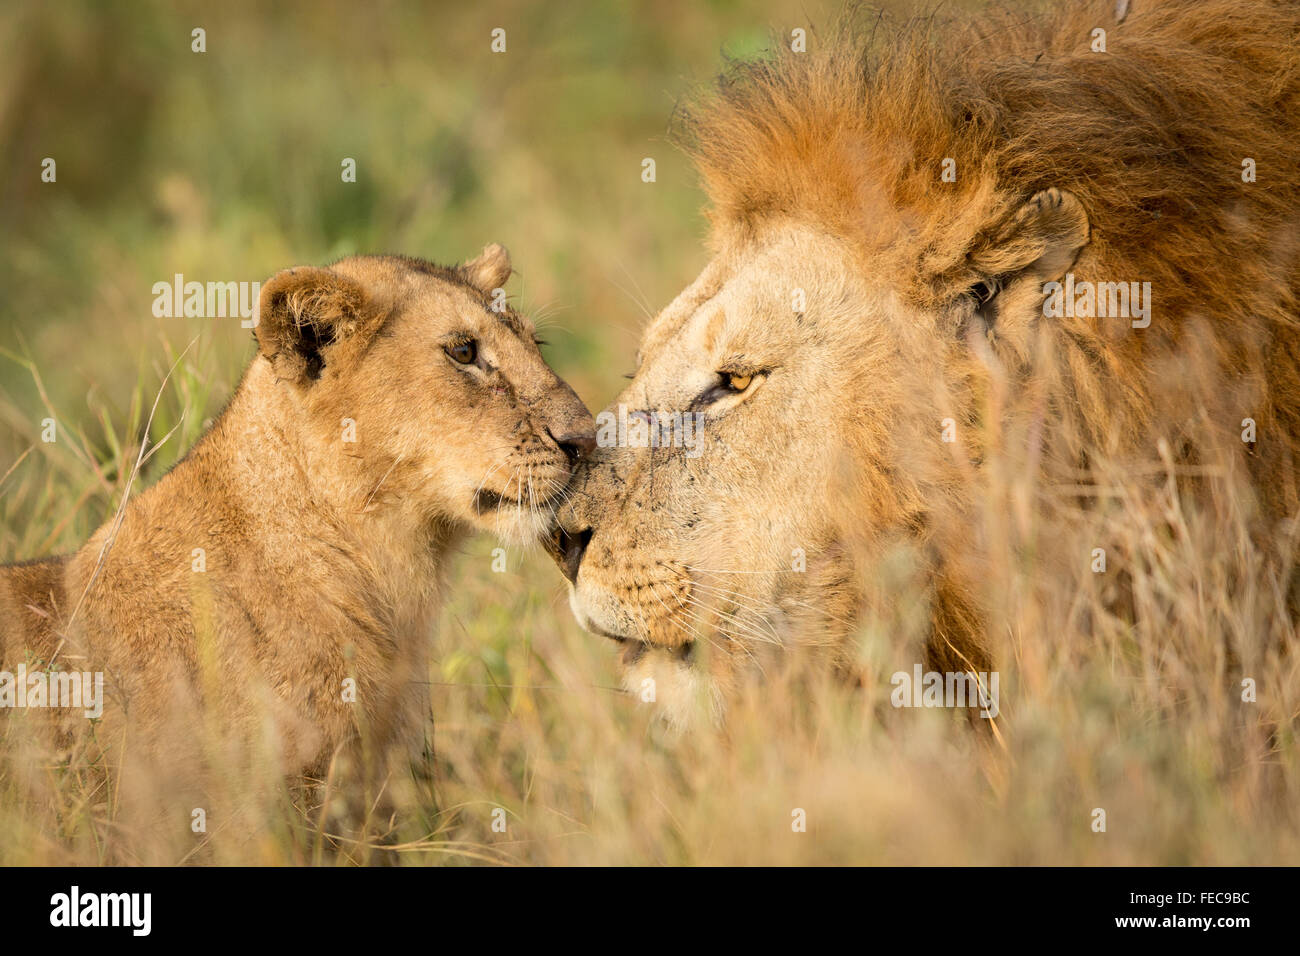 Adult Male African Lion and young cub in the Serengeti National Park Tanzania - Stock Image